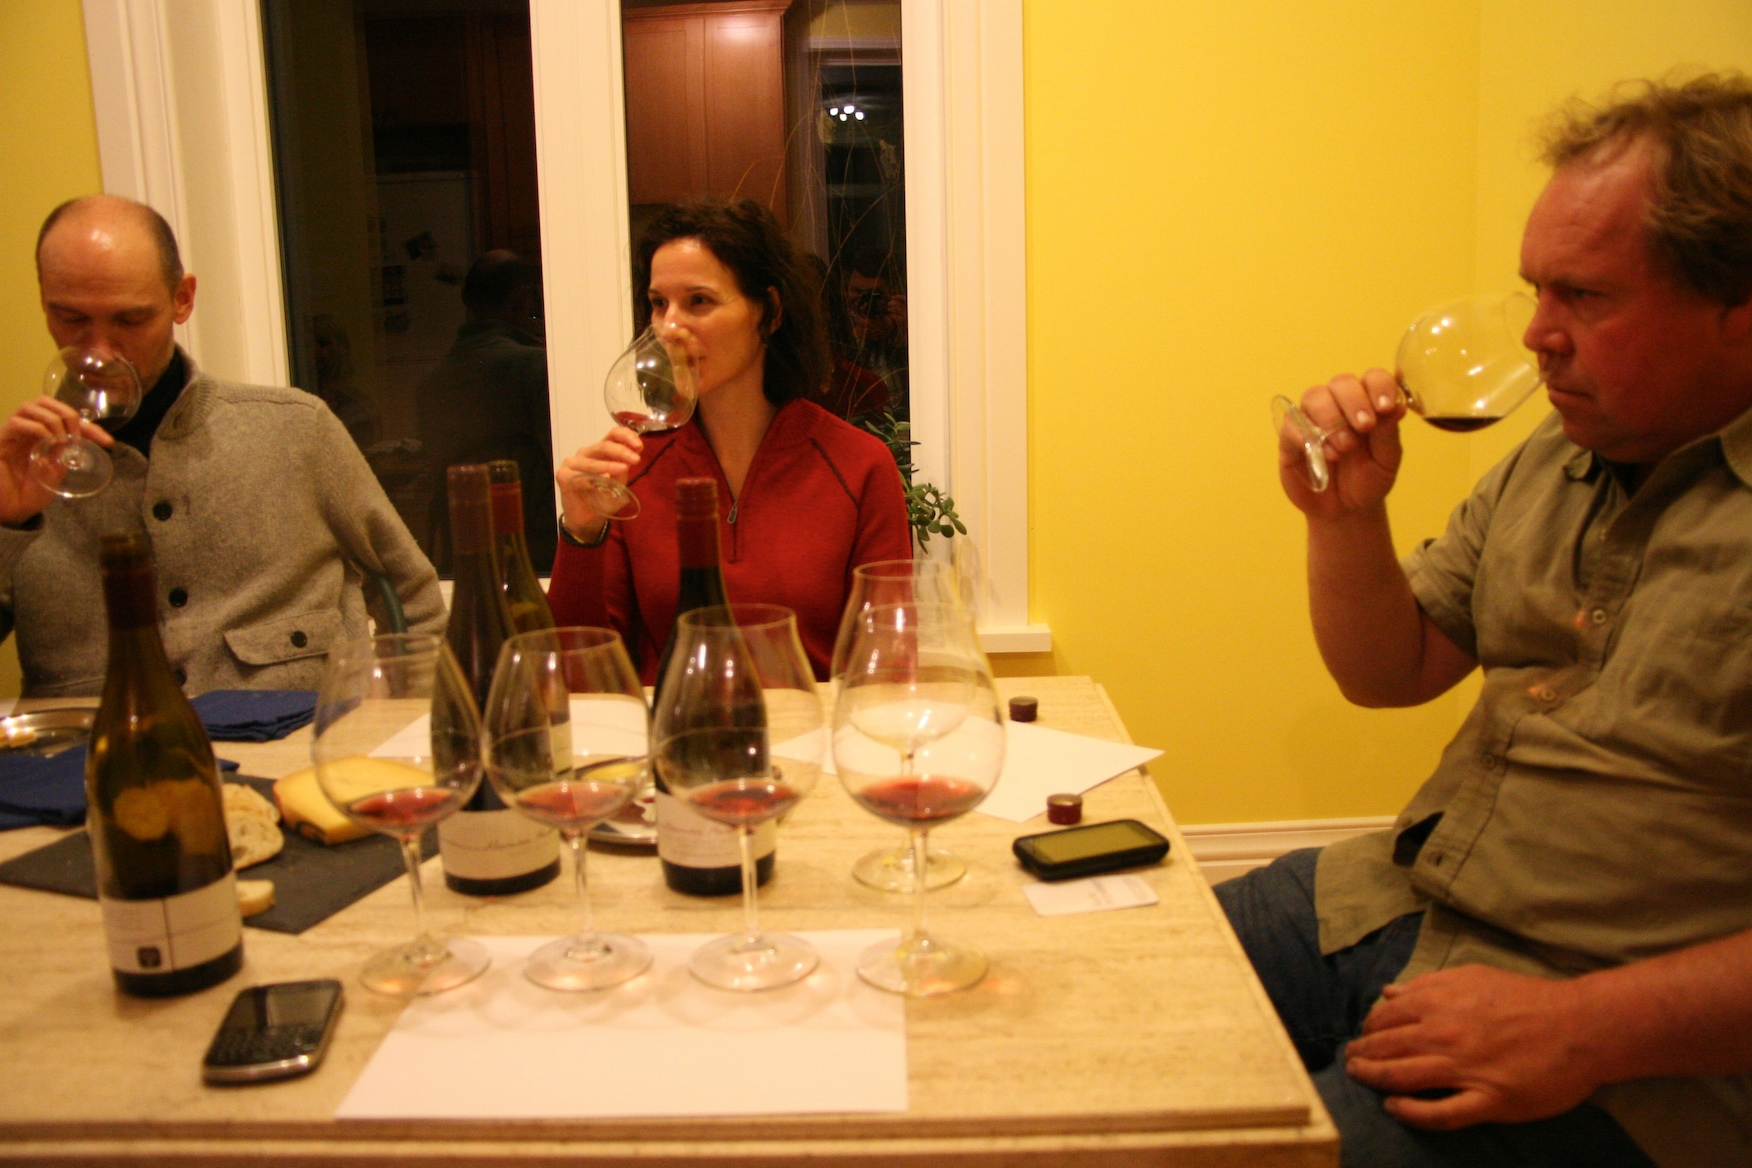 Norman Hardie (right) with his '05, '06, '07, '08 Prince Edward County Pinot Noirs.